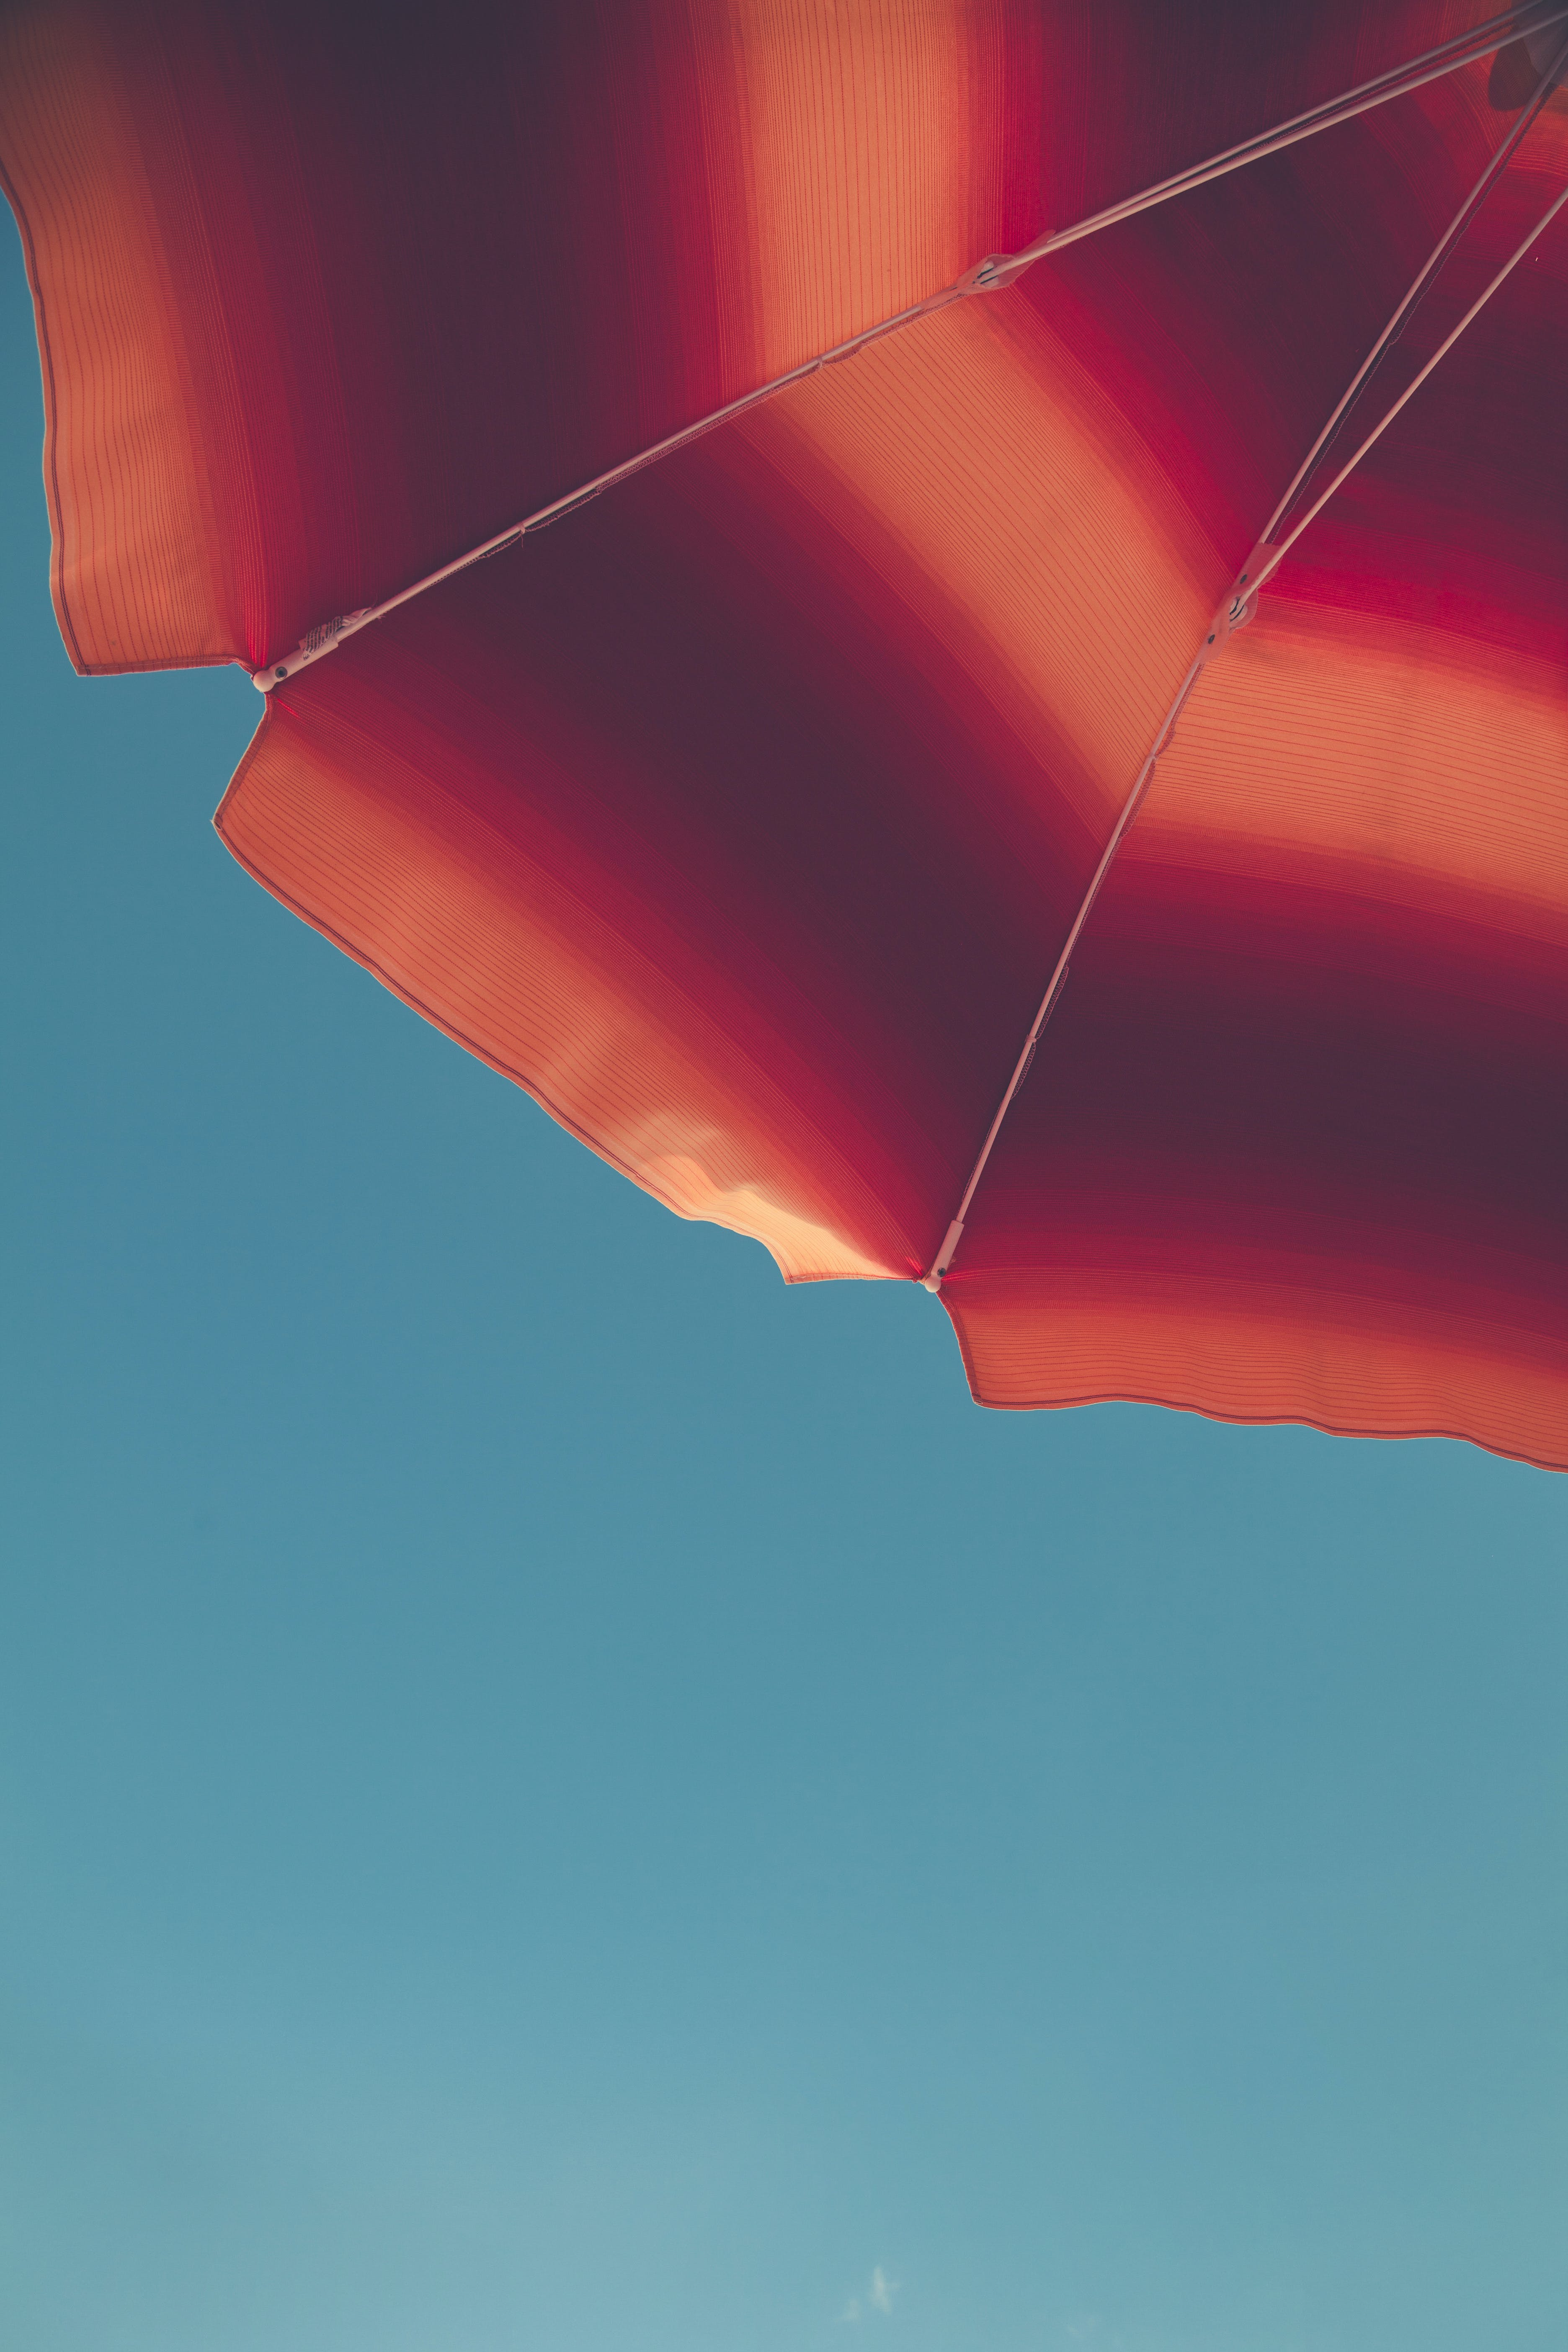 Red and Orange Umbrella